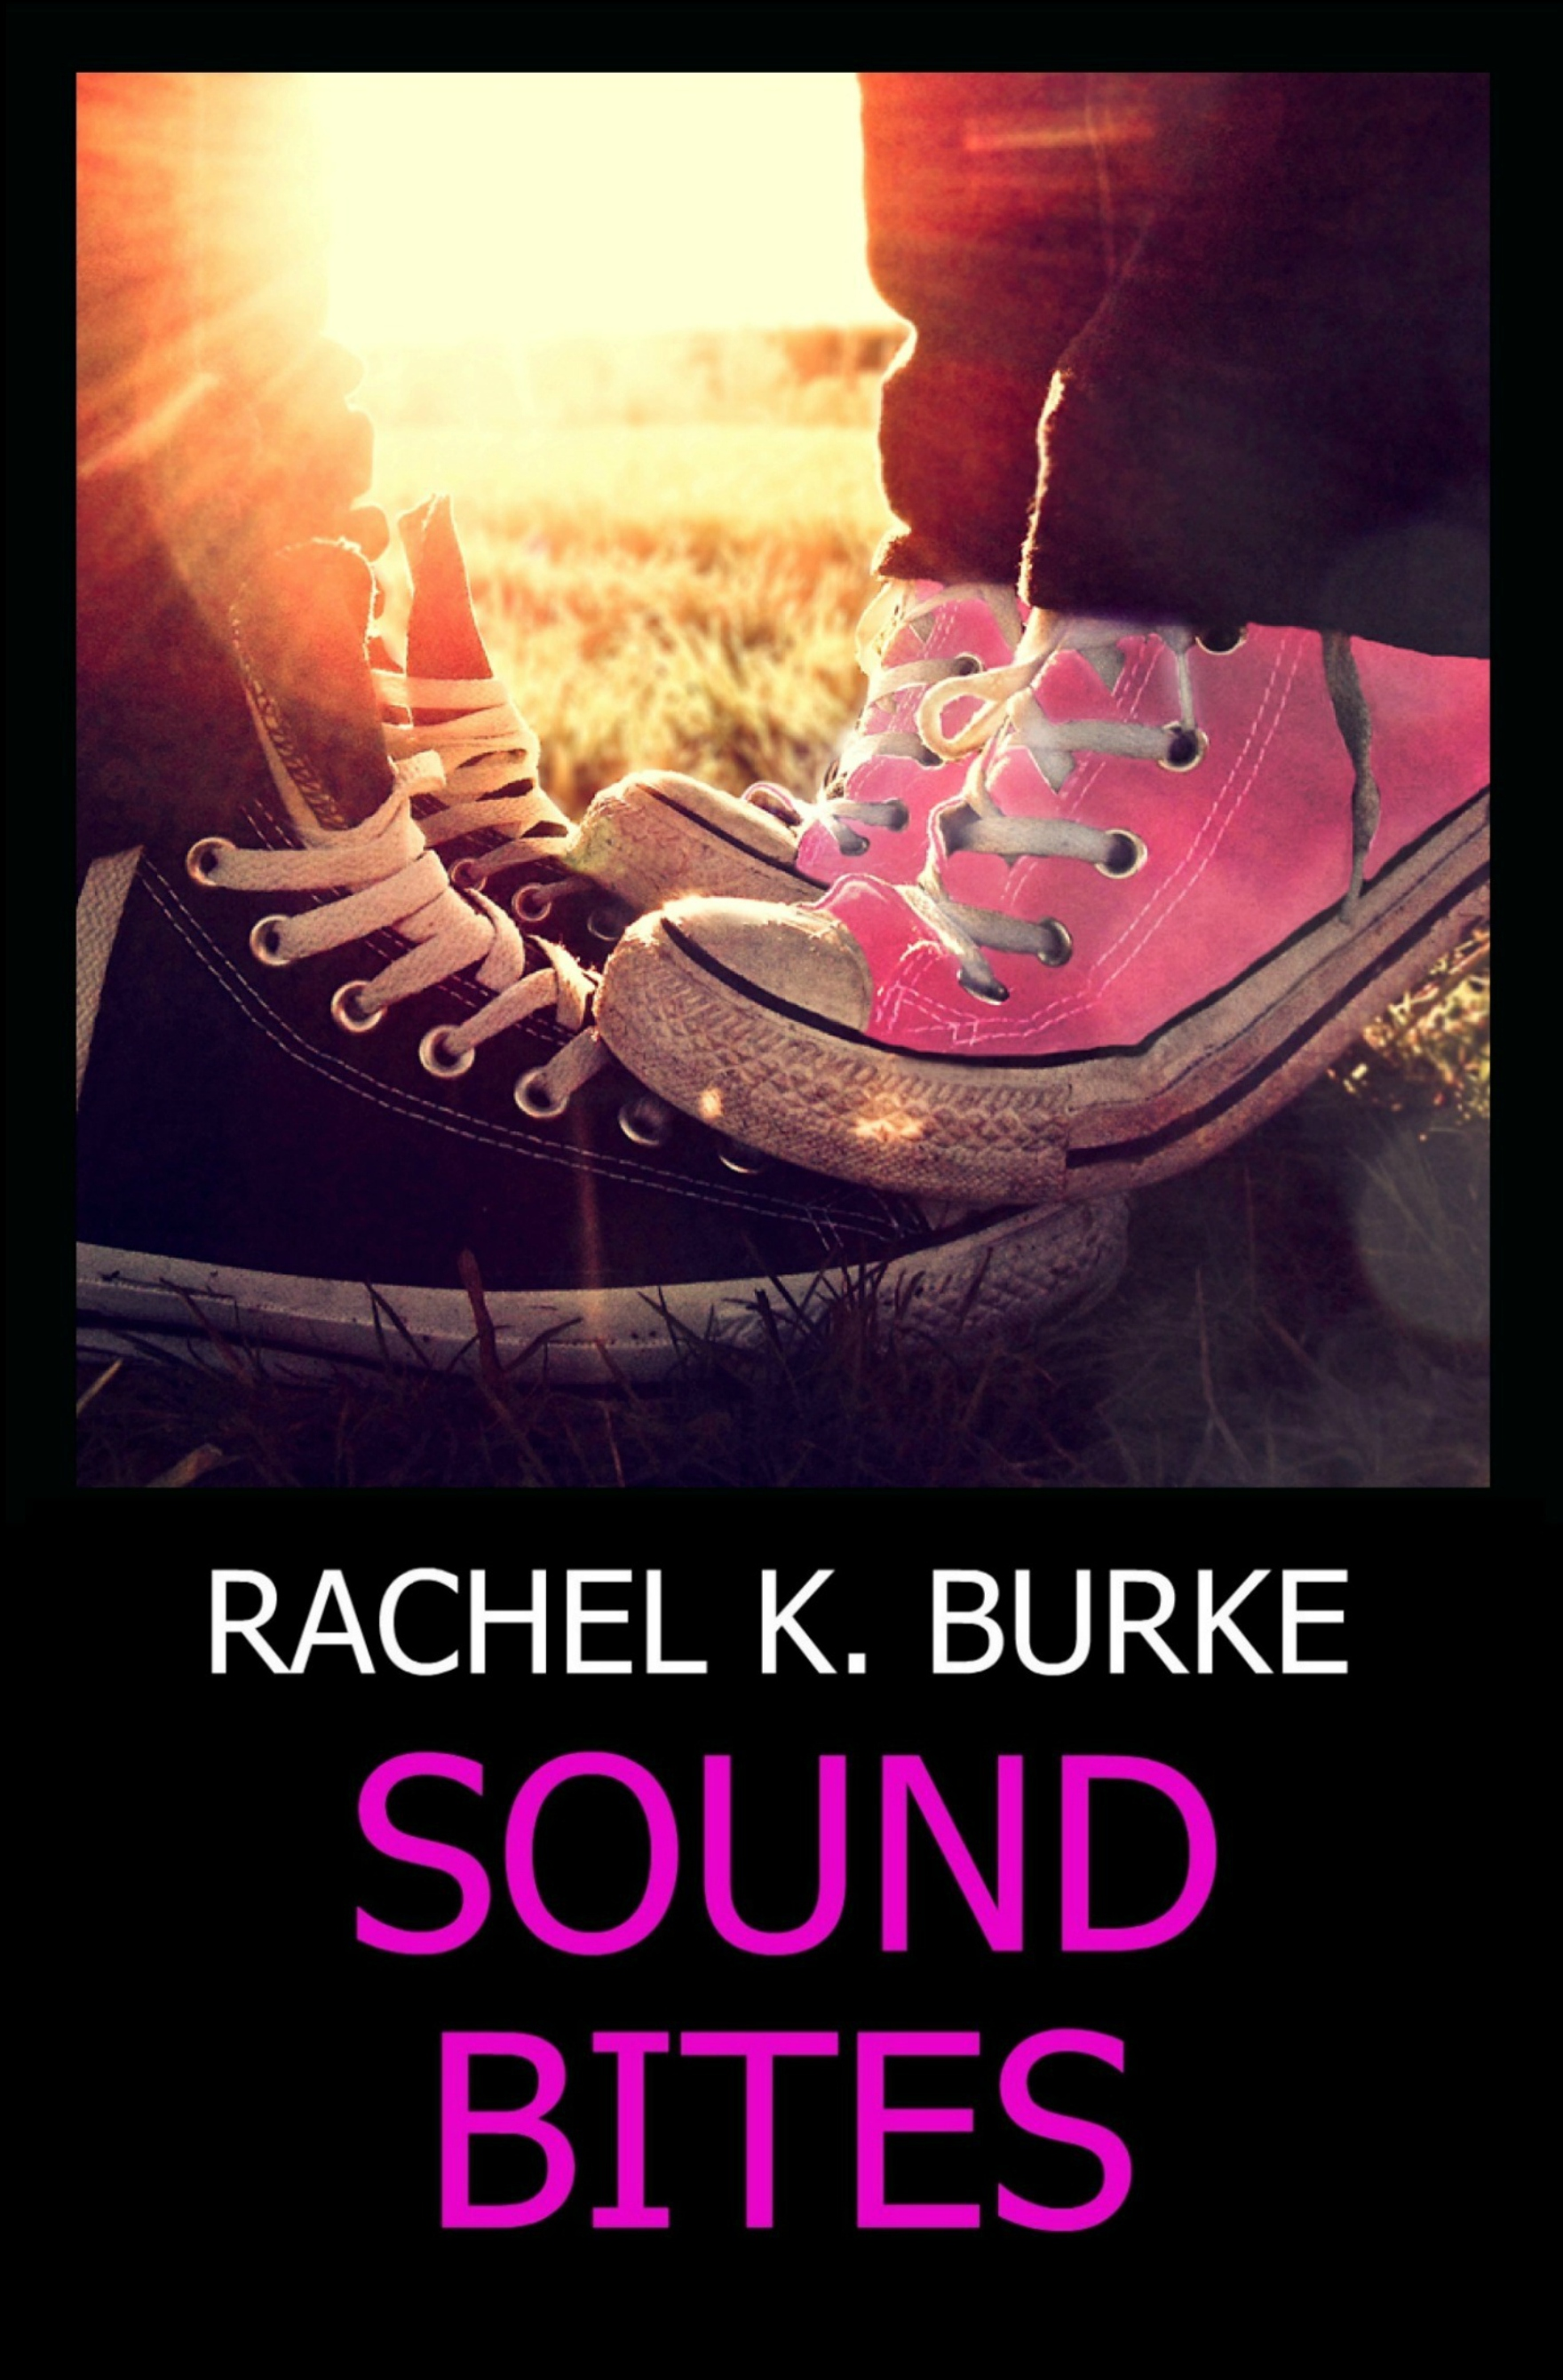 Sound Bites - Renee Evans has a knack for trouble. After walking in on her best friend and boyfriend in bed together, twenty-five year-old Renee flees her dream job as a music journalist in sunny Los Angeles and returns to her hometown of Boston – only to meet Dylan Cavallari, the mysterious, aspiring musician who lives in her apartment building.Dylan's piercing gaze and womanizing demeanor make him exactly the type of guy that Renee should steer clear of – which is most likely the reason she falls for him. But when Renee's troublesome ex comes back and threatens to drive her and Dylan apart, Renee is forced to face her past and save her relationship with Dylan before it's too late.Sound Bites is a novel about love, friendship, betrayal, forgiveness, and the power of music to help you find your way.